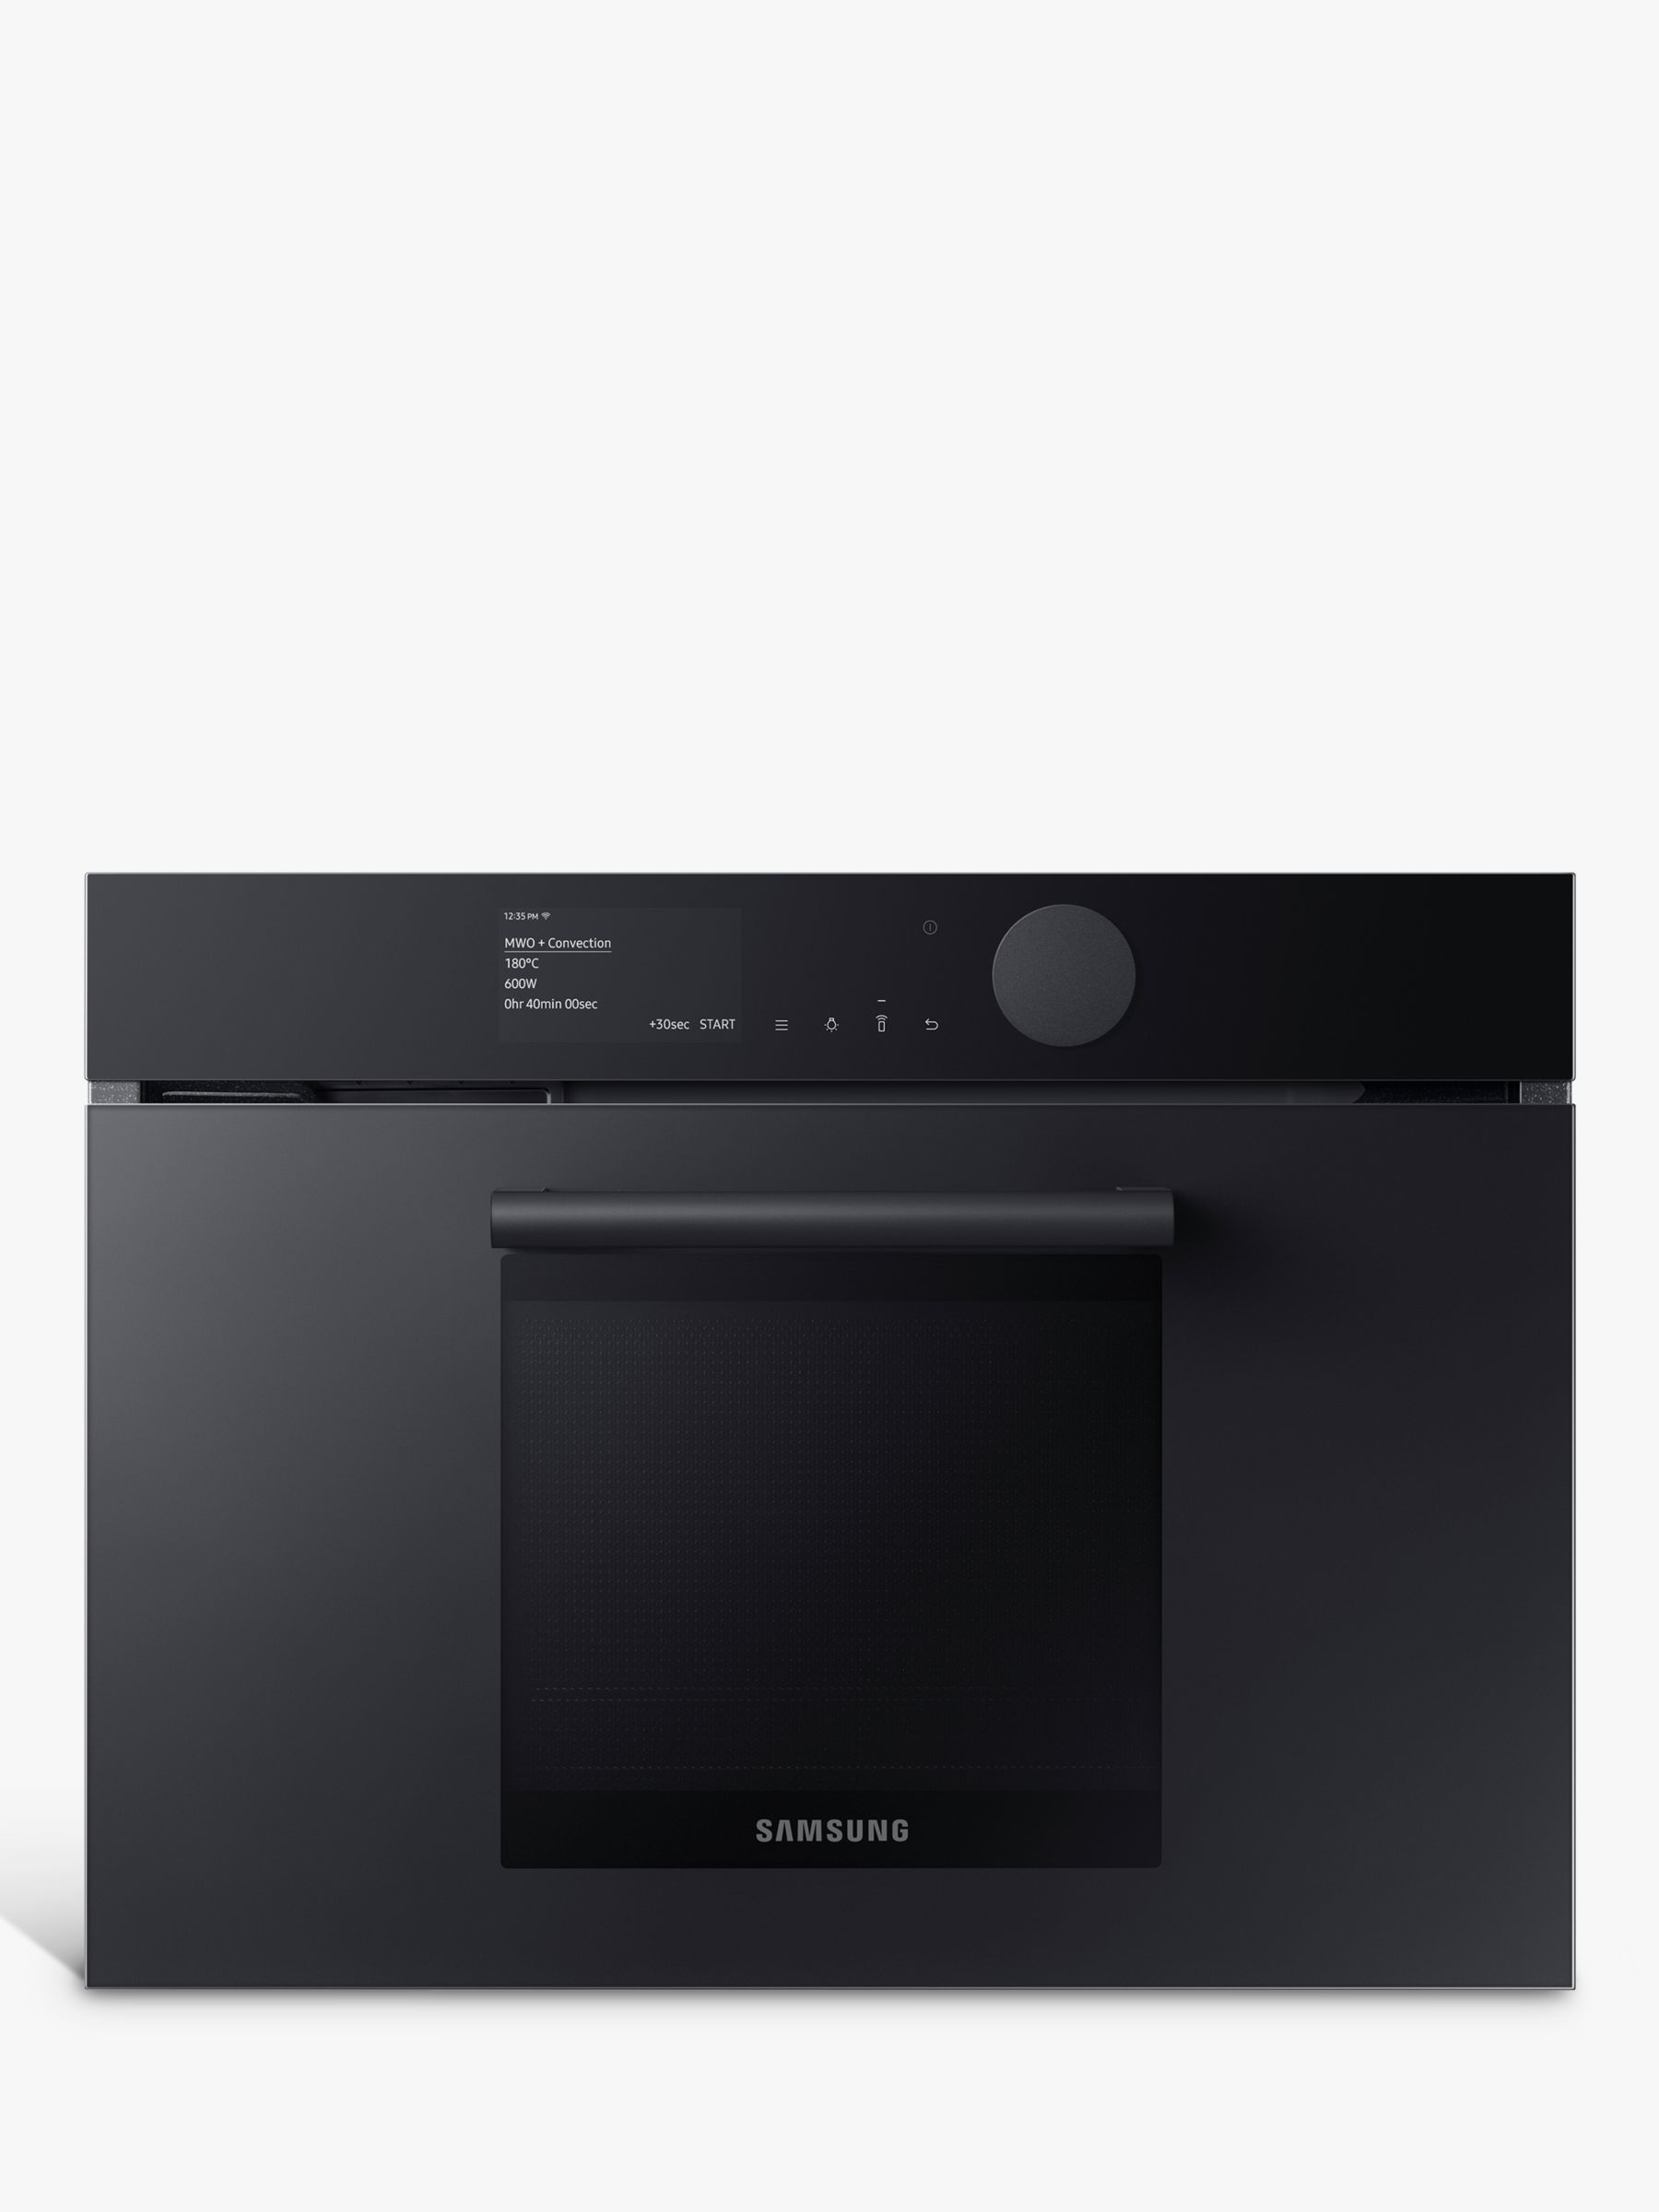 samsung infinite nq50t9539bd built in combination microwave oven graphite grey